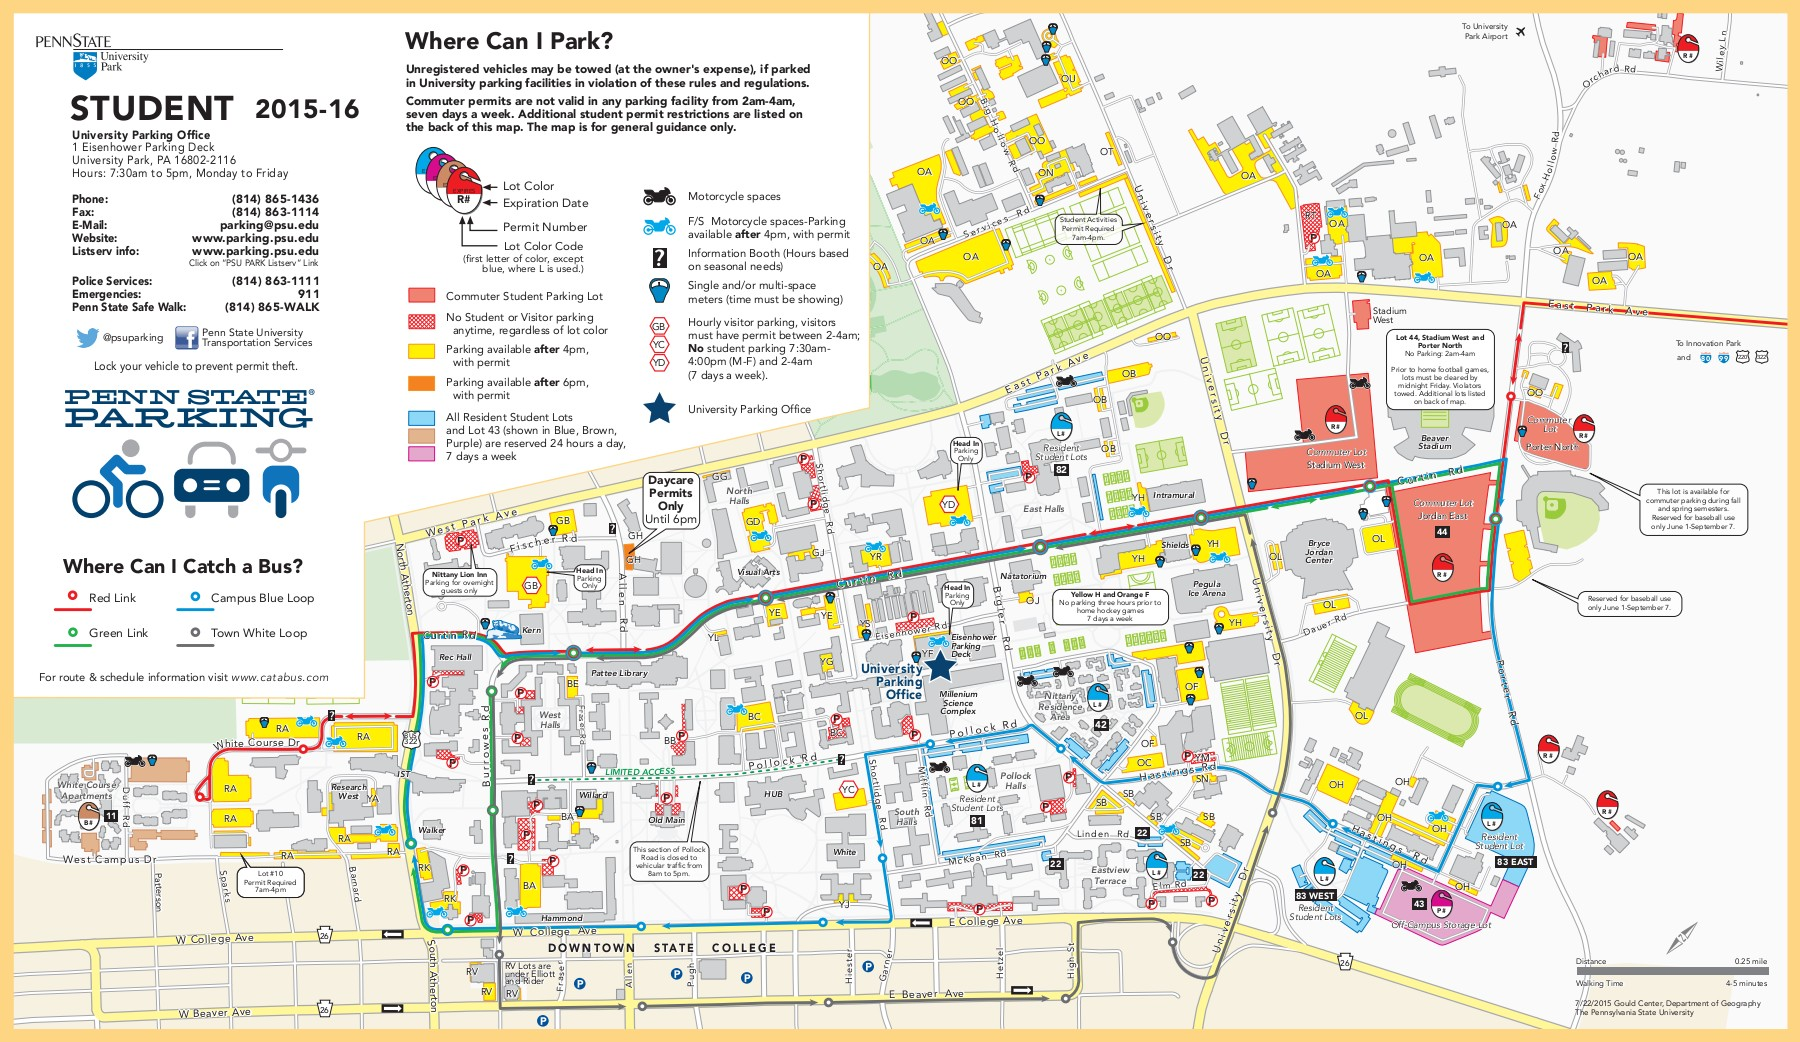 map of psu campus 2015 16 Student Parking Map And Regulations 1 map of psu campus